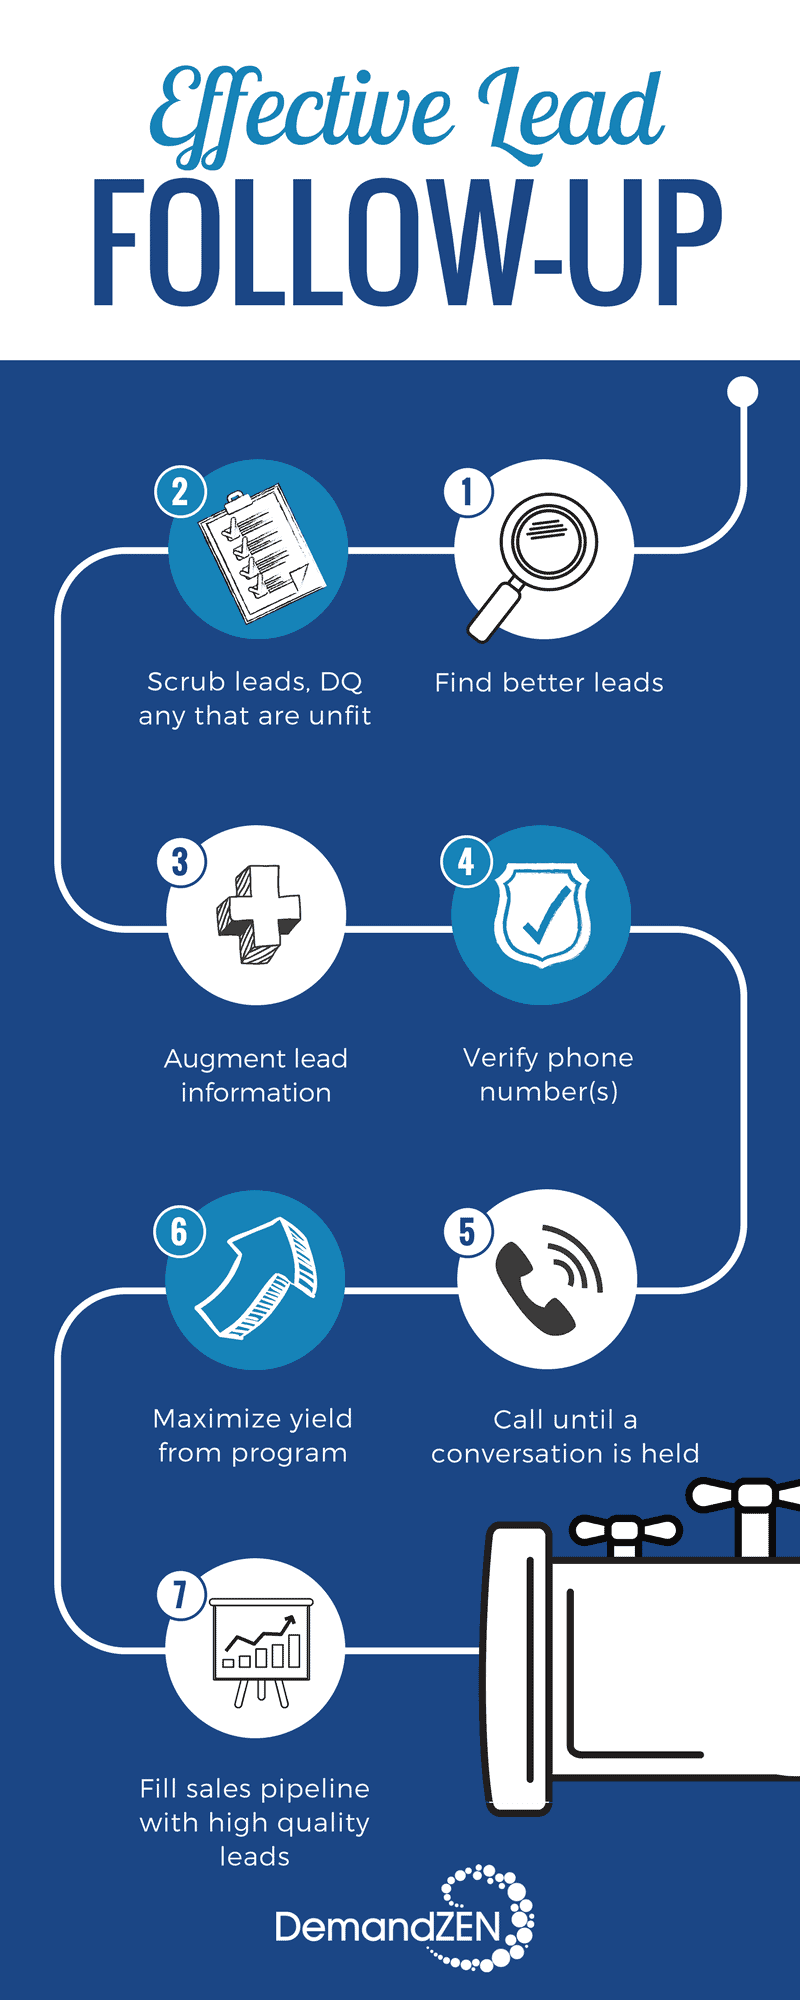 Lead follow-up infographic